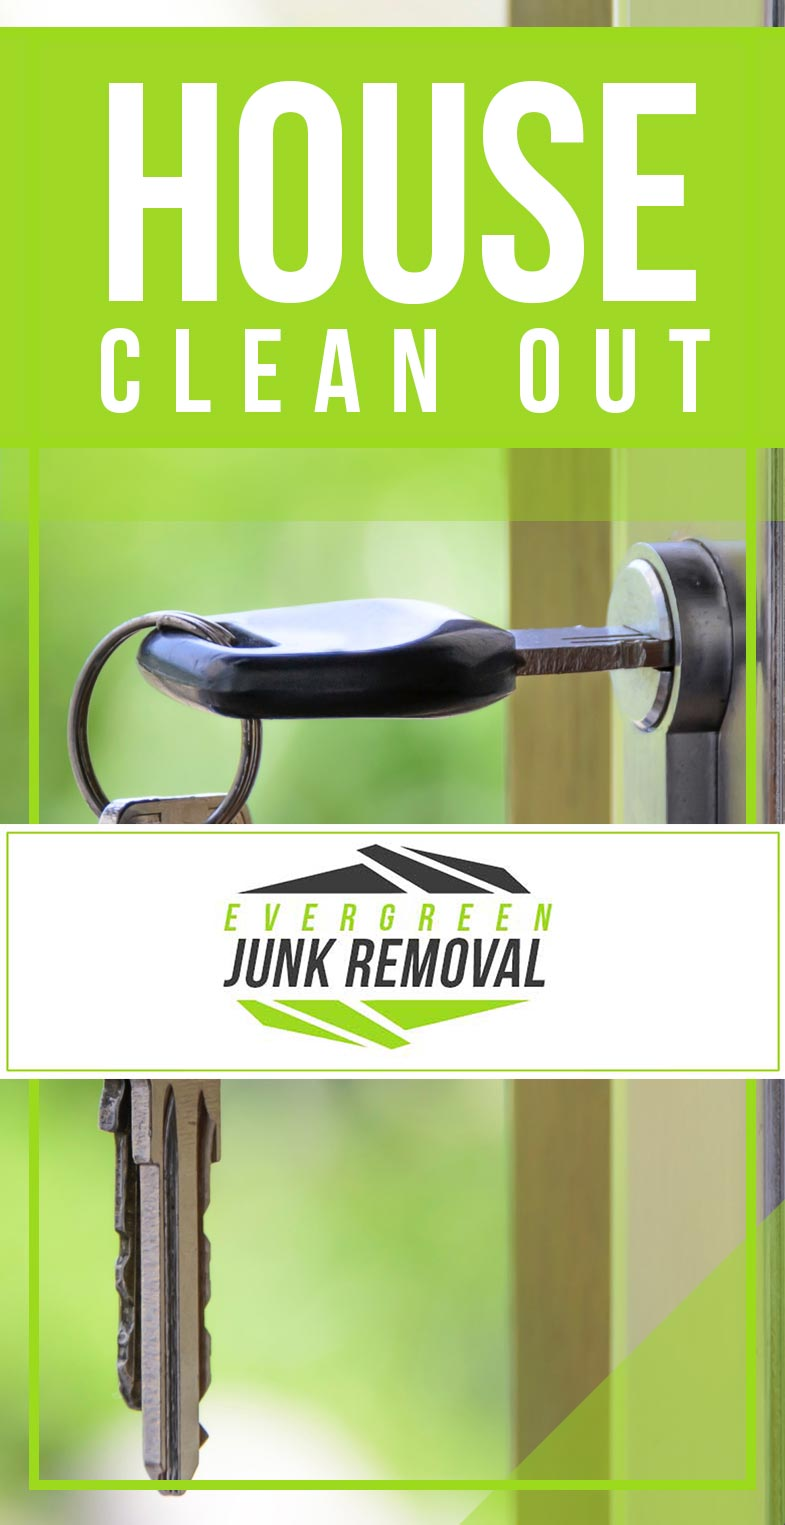 Junk Removal Broadview Park House Clean Out